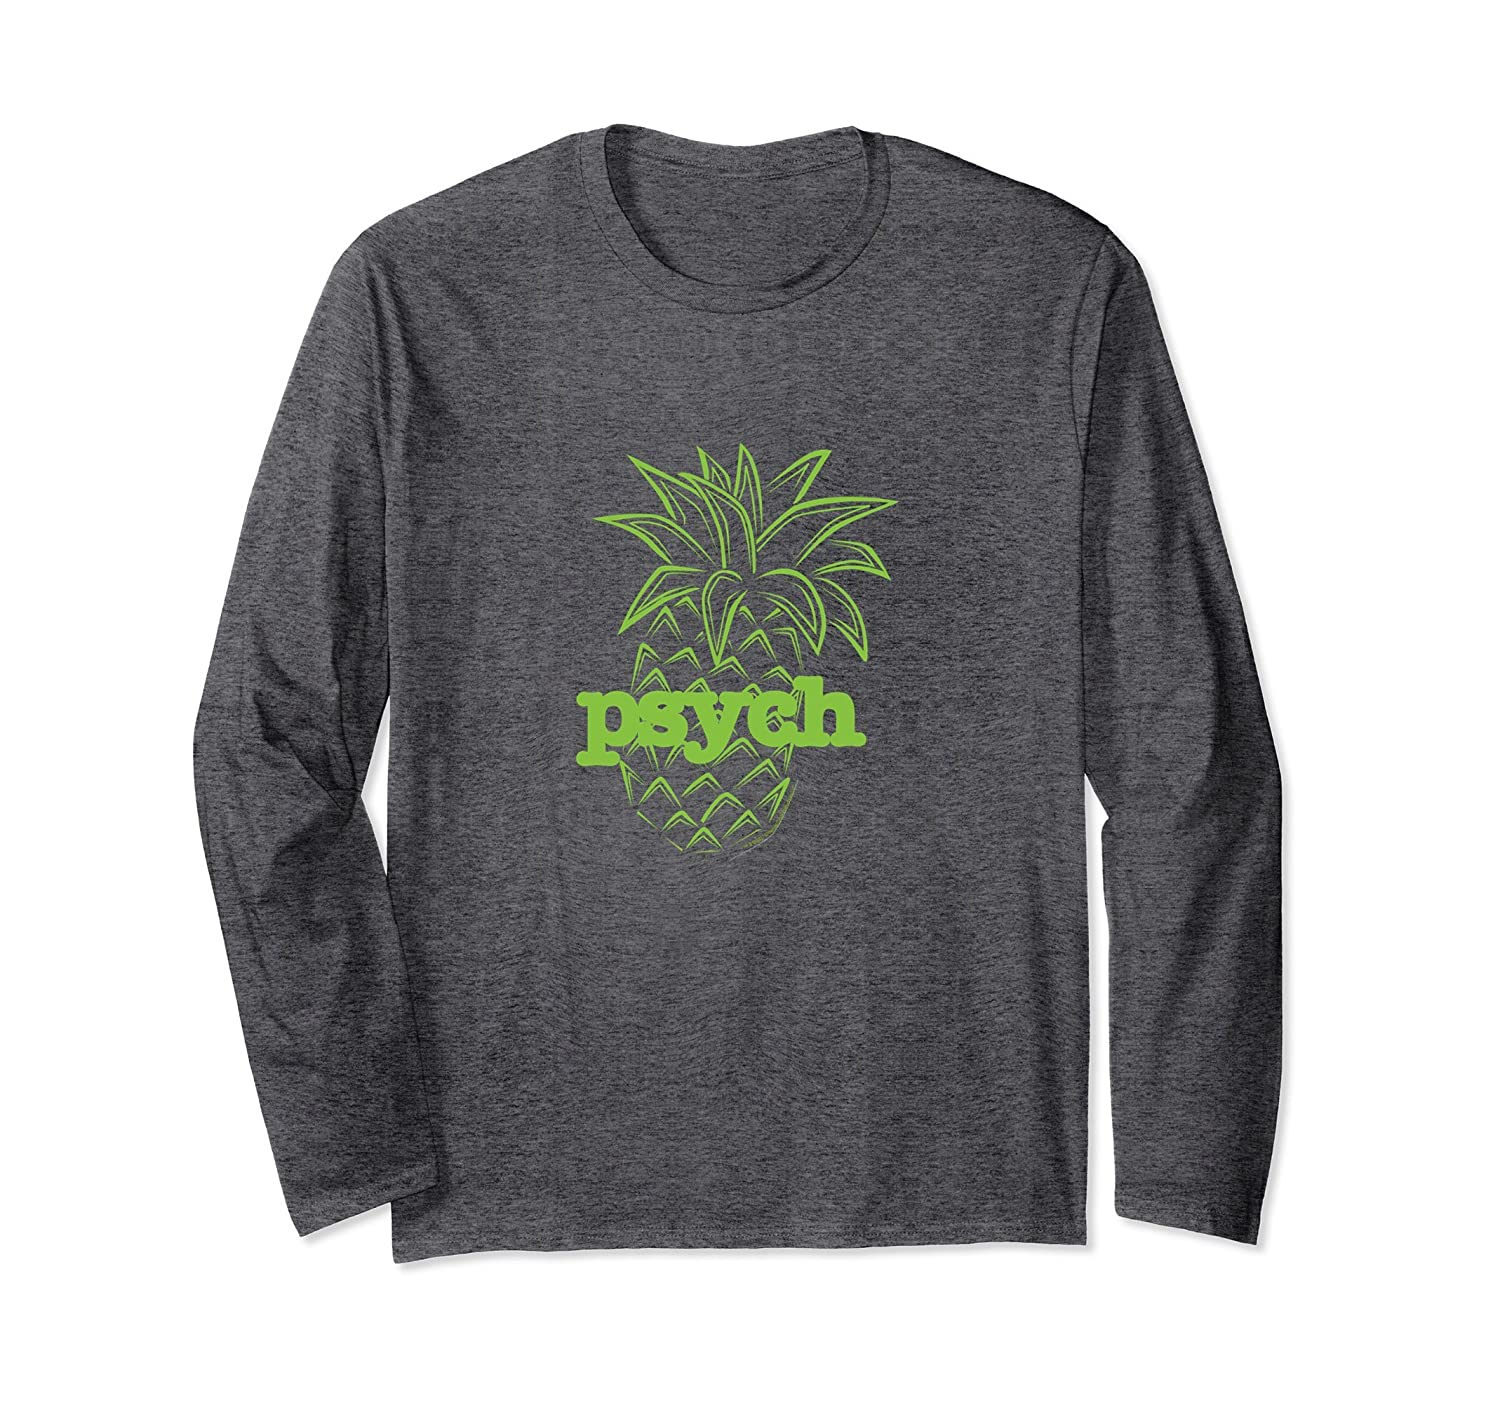 ccf17ddea Psych Pineapple Awesome Long Sleeve T-Shirt-ah my shirt one gift ...